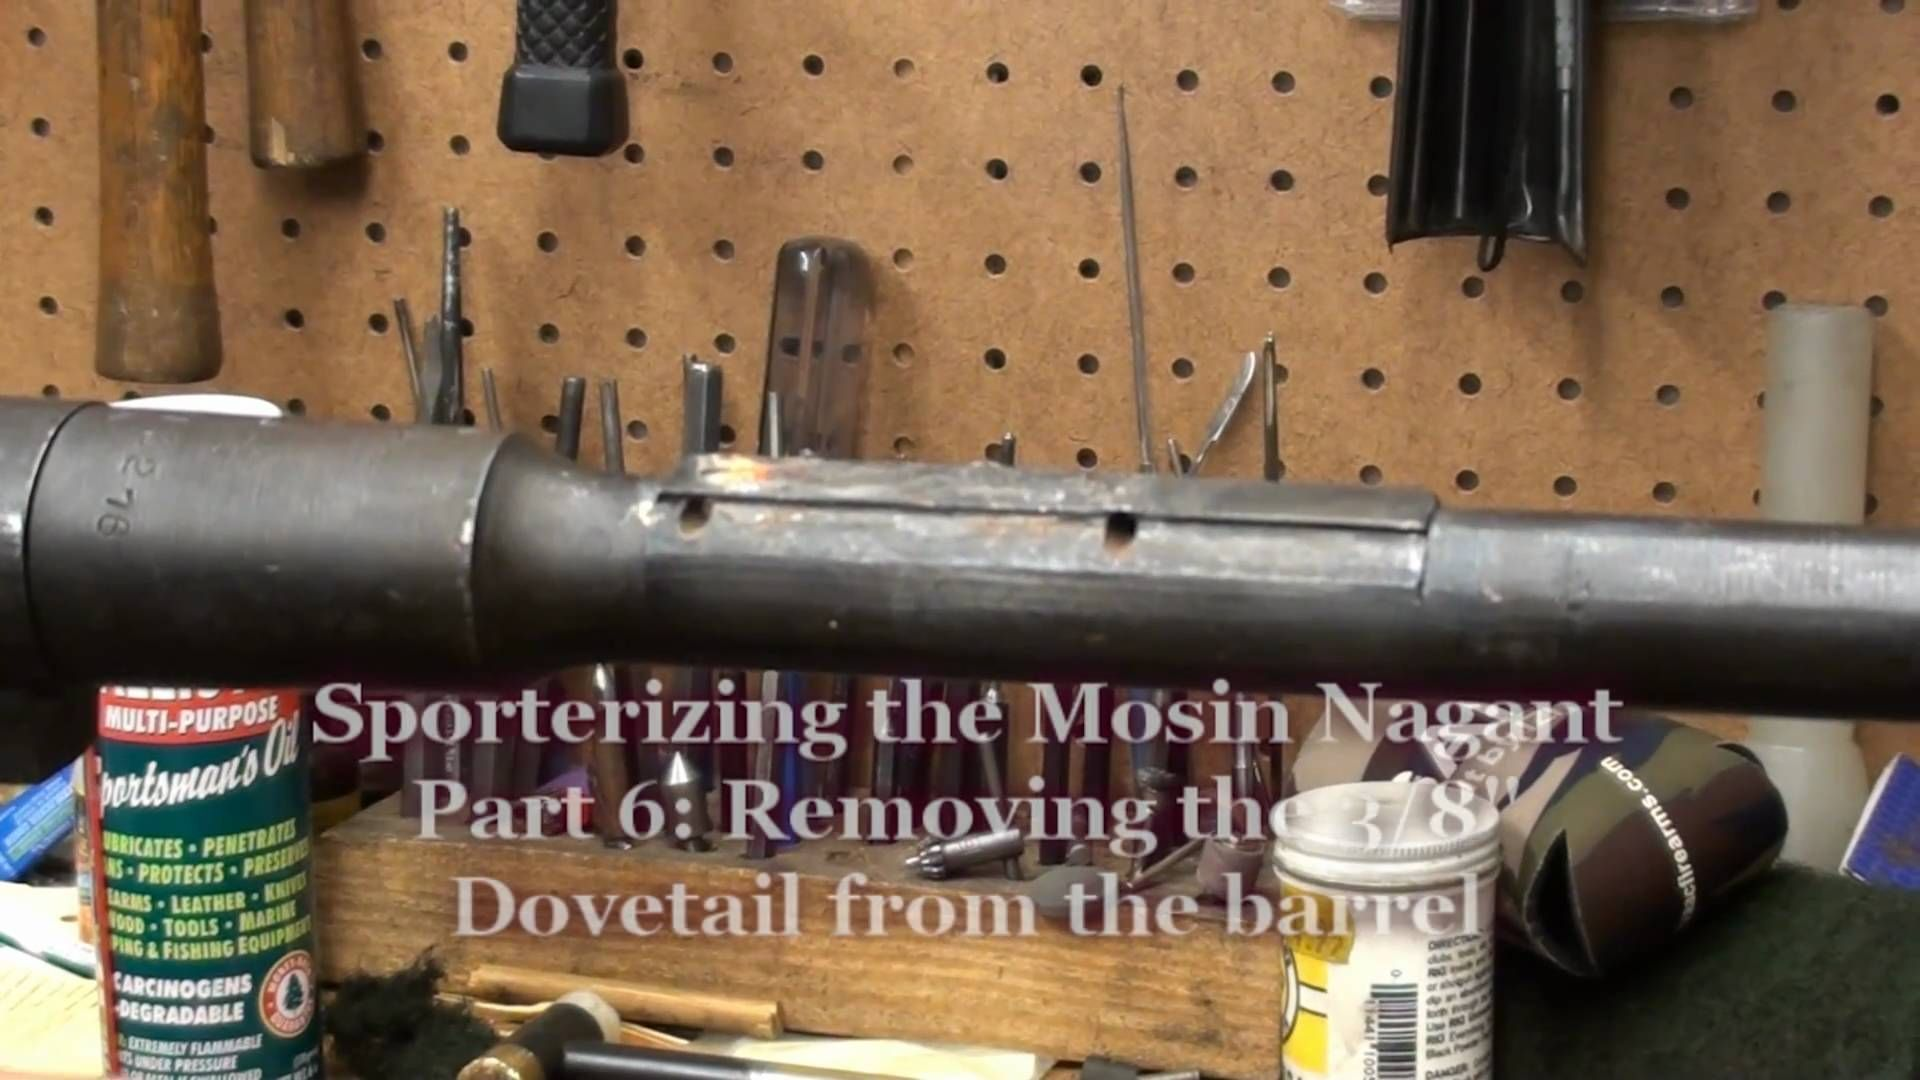 Sporterizing the Mosin Nagant Part 6- Finishing up metal work and applyi.